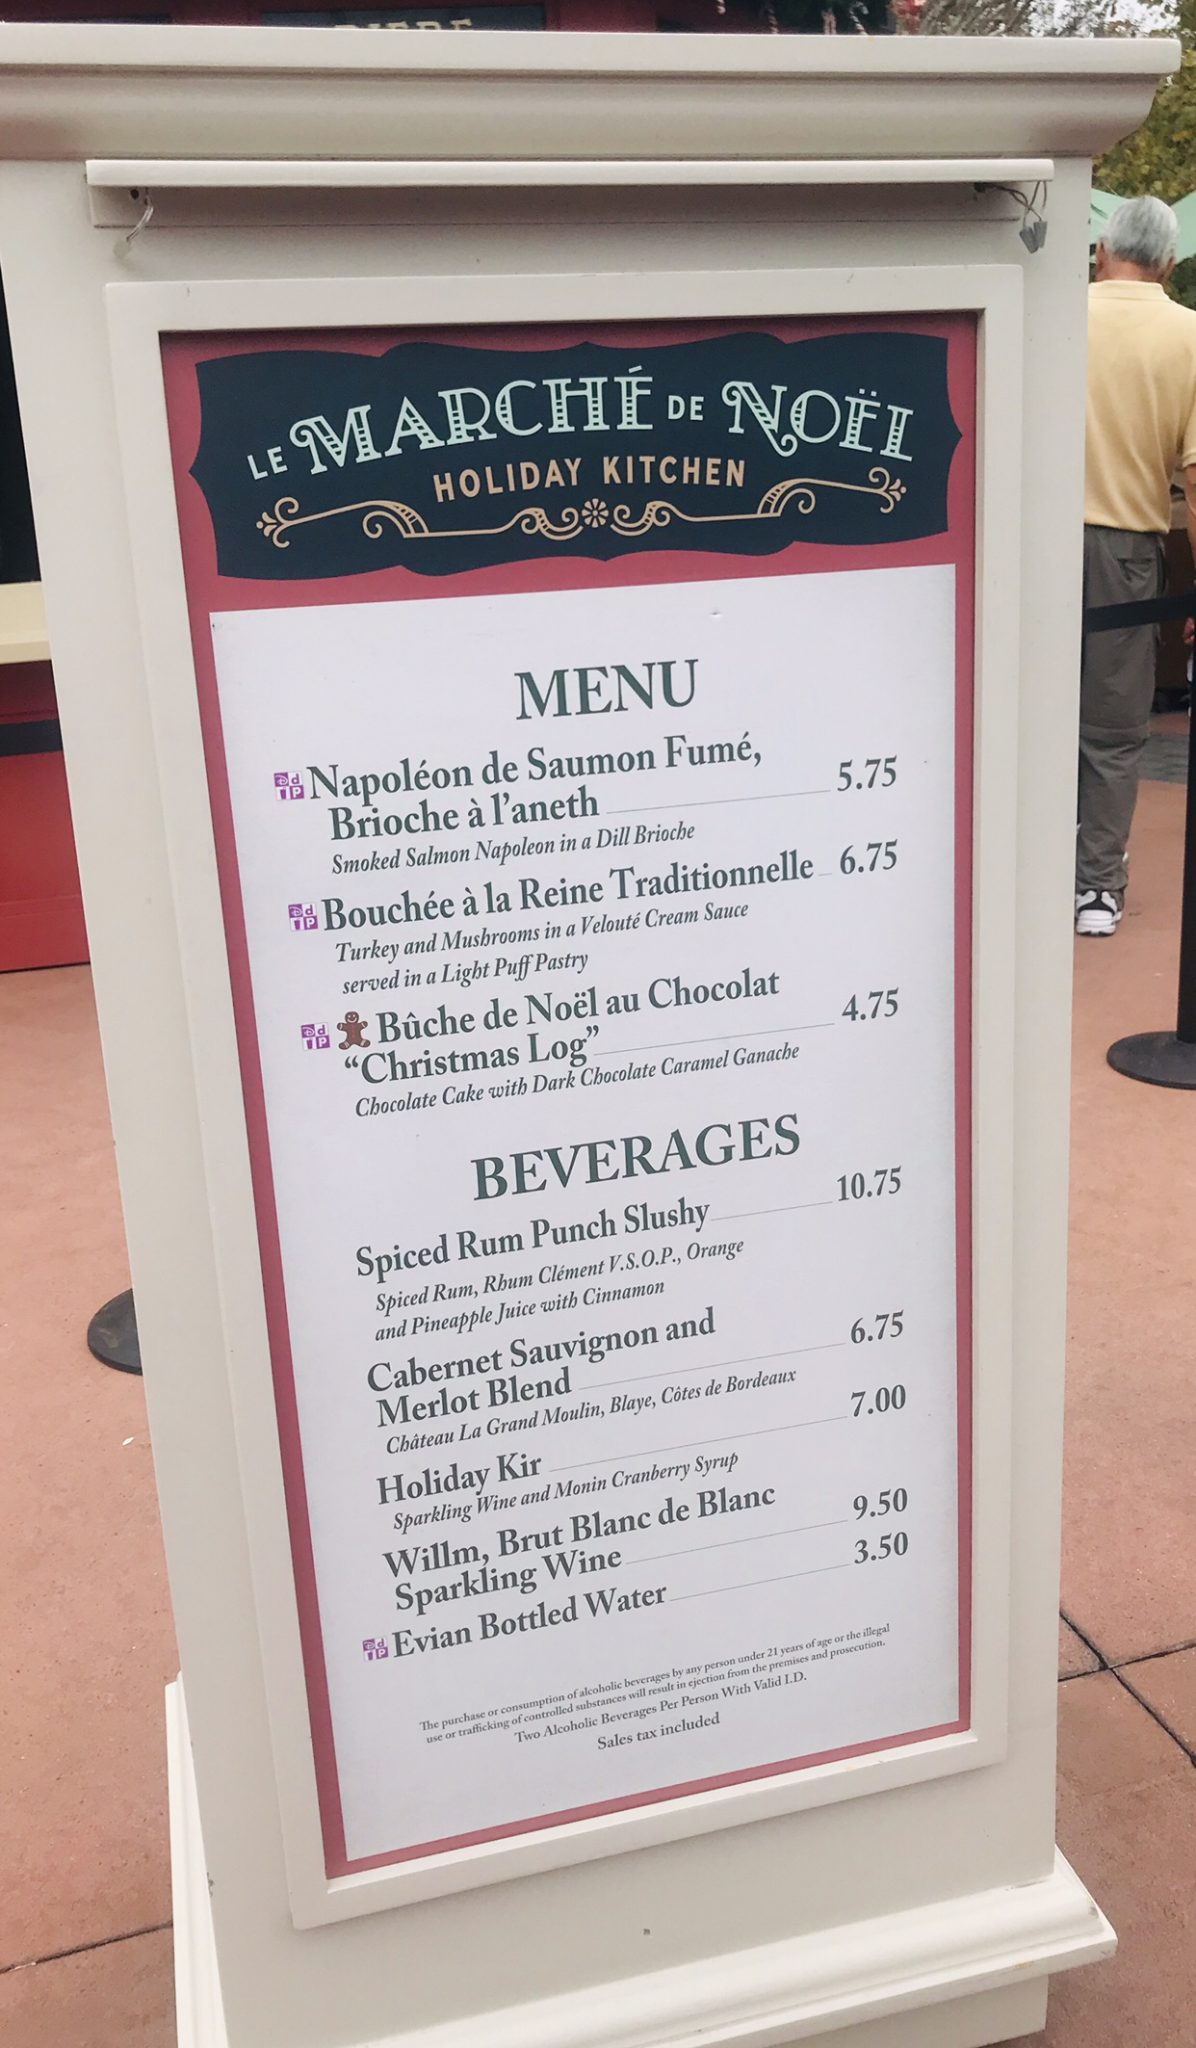 Marche de Noel France booth menu Epcot Holiday Festival